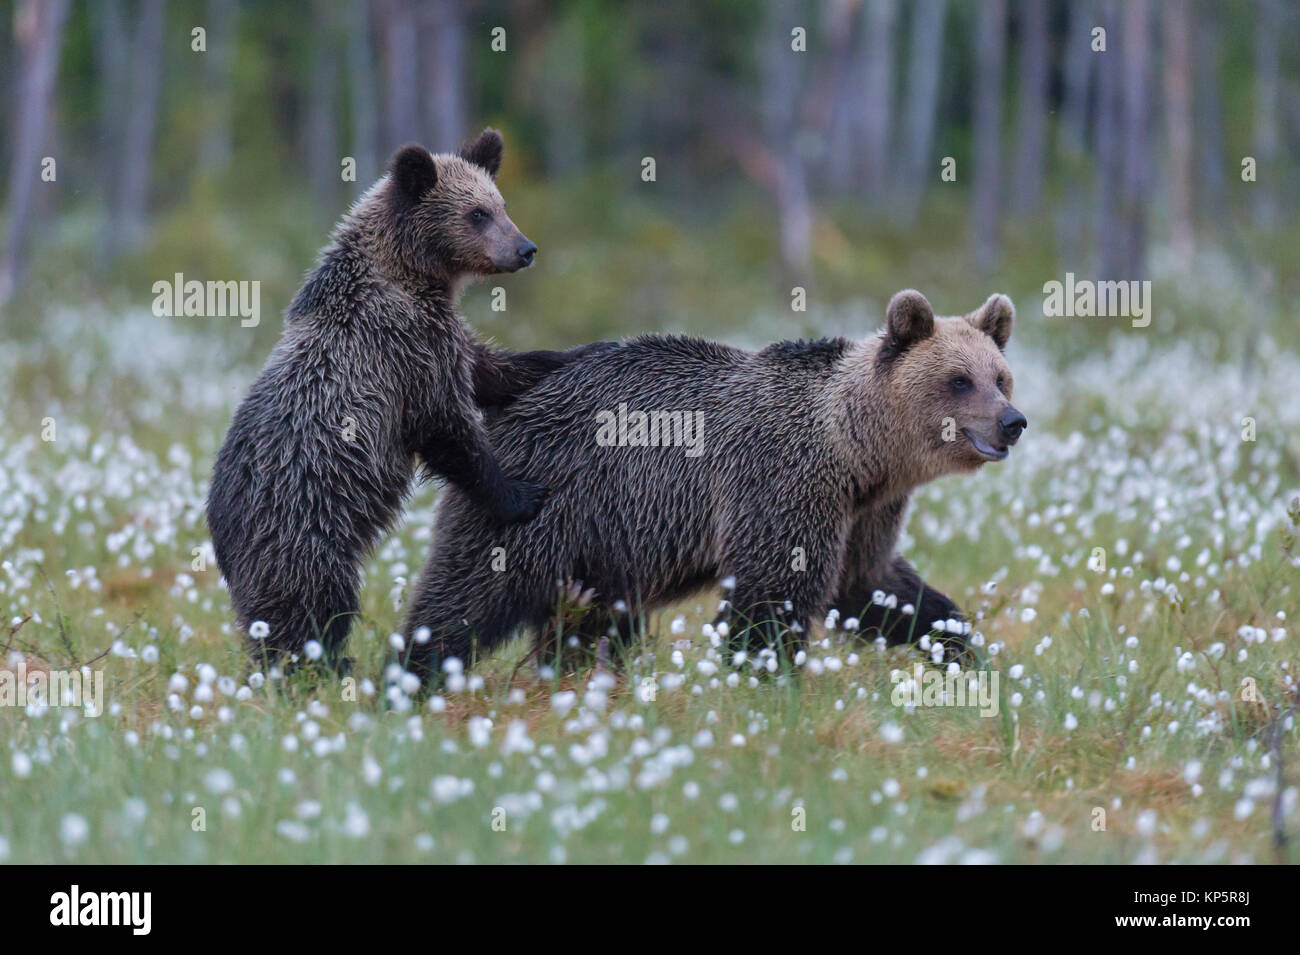 Braunbaer mit Jungtier, brown bear mother with young animal - Stock Image